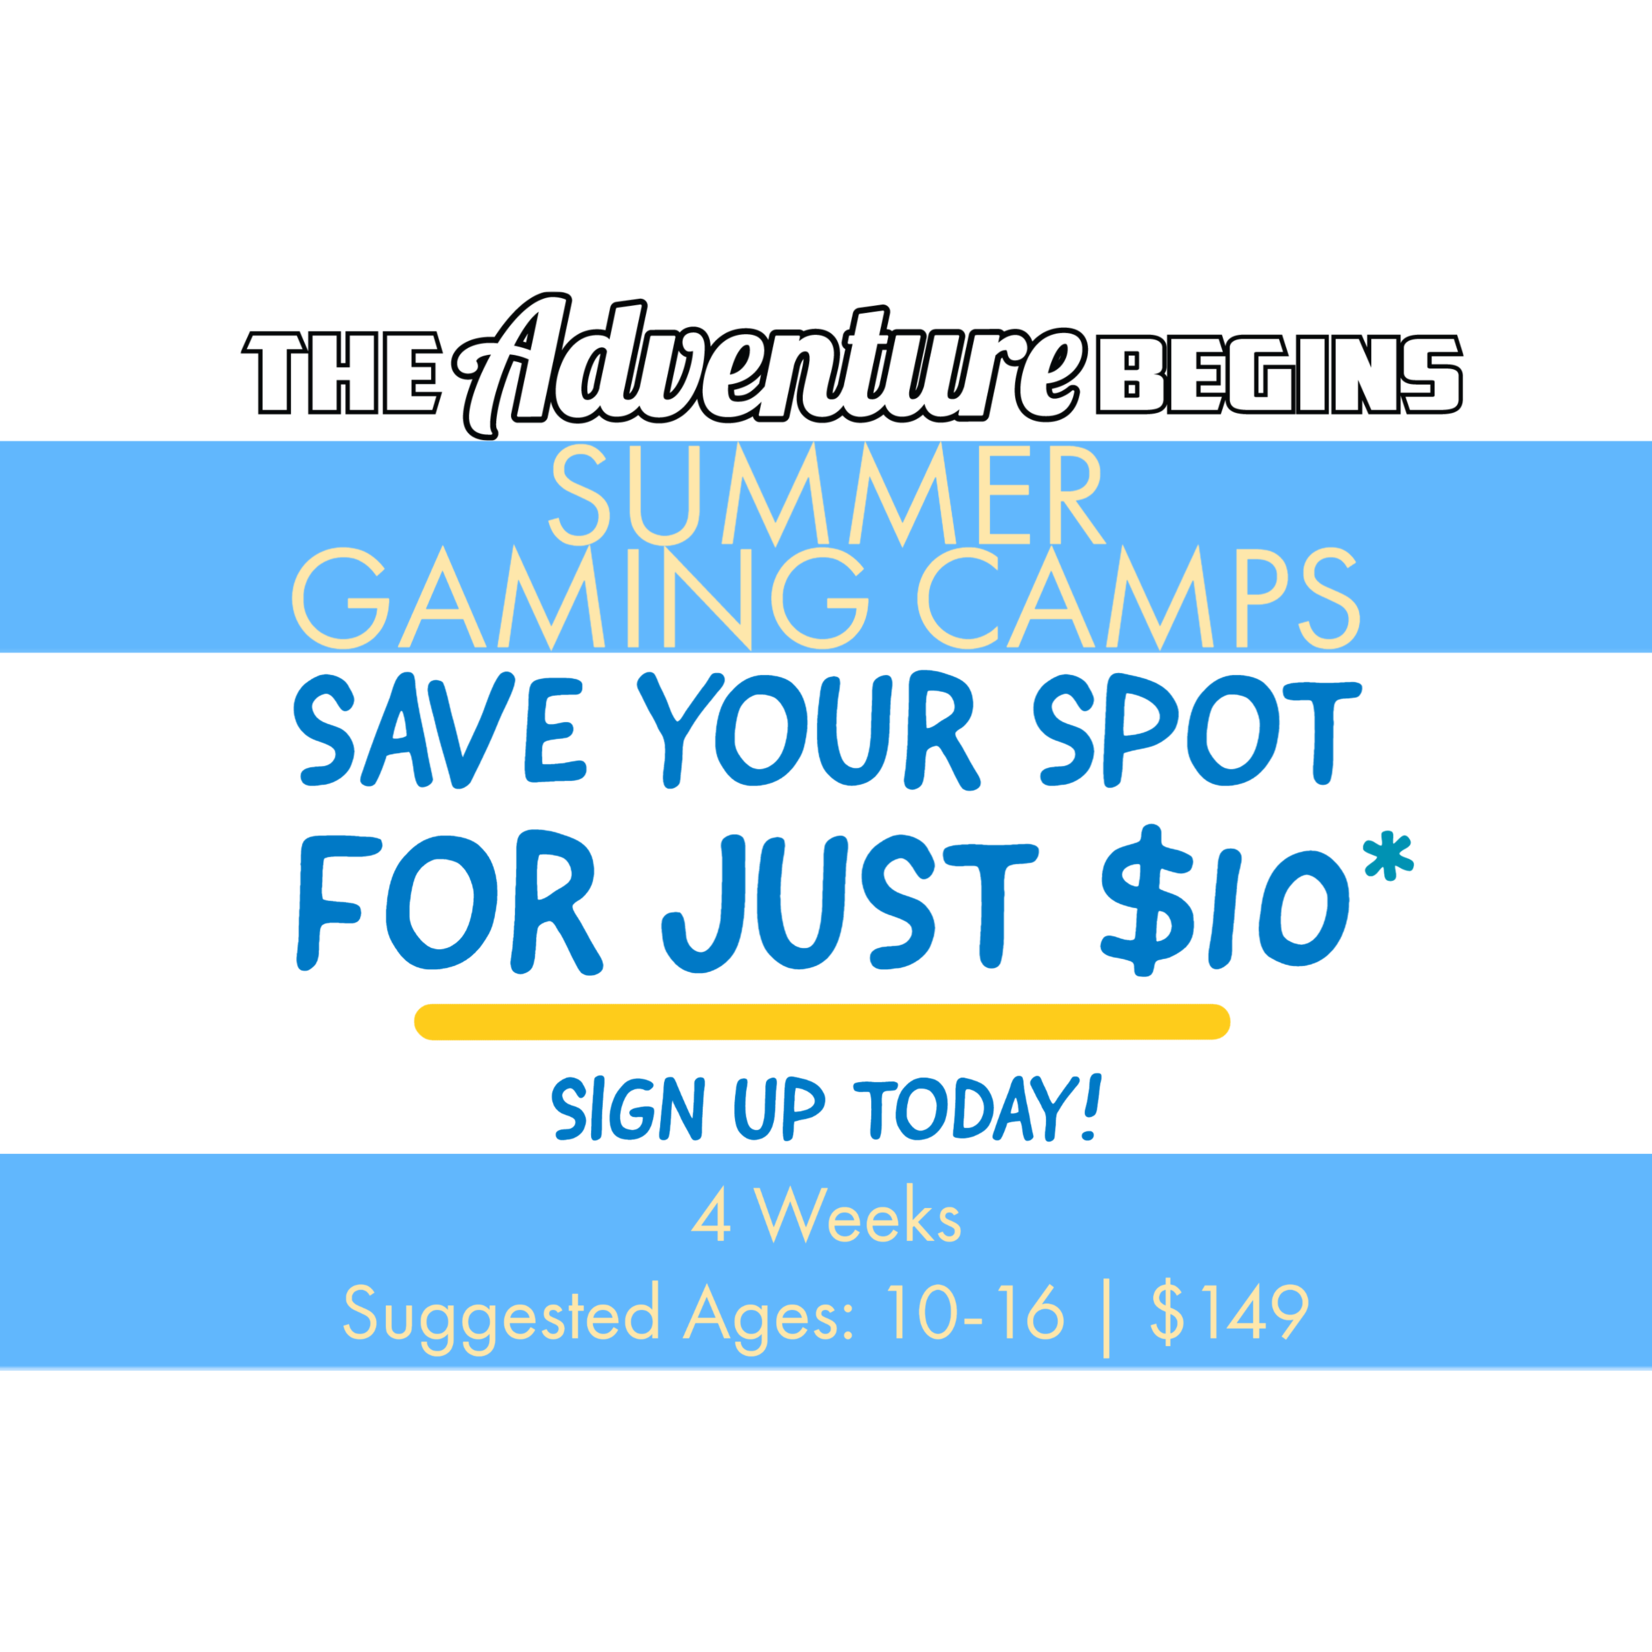 The Adventure Begins Summer Camp Deposit - The Adventure Begins Gaming Camps